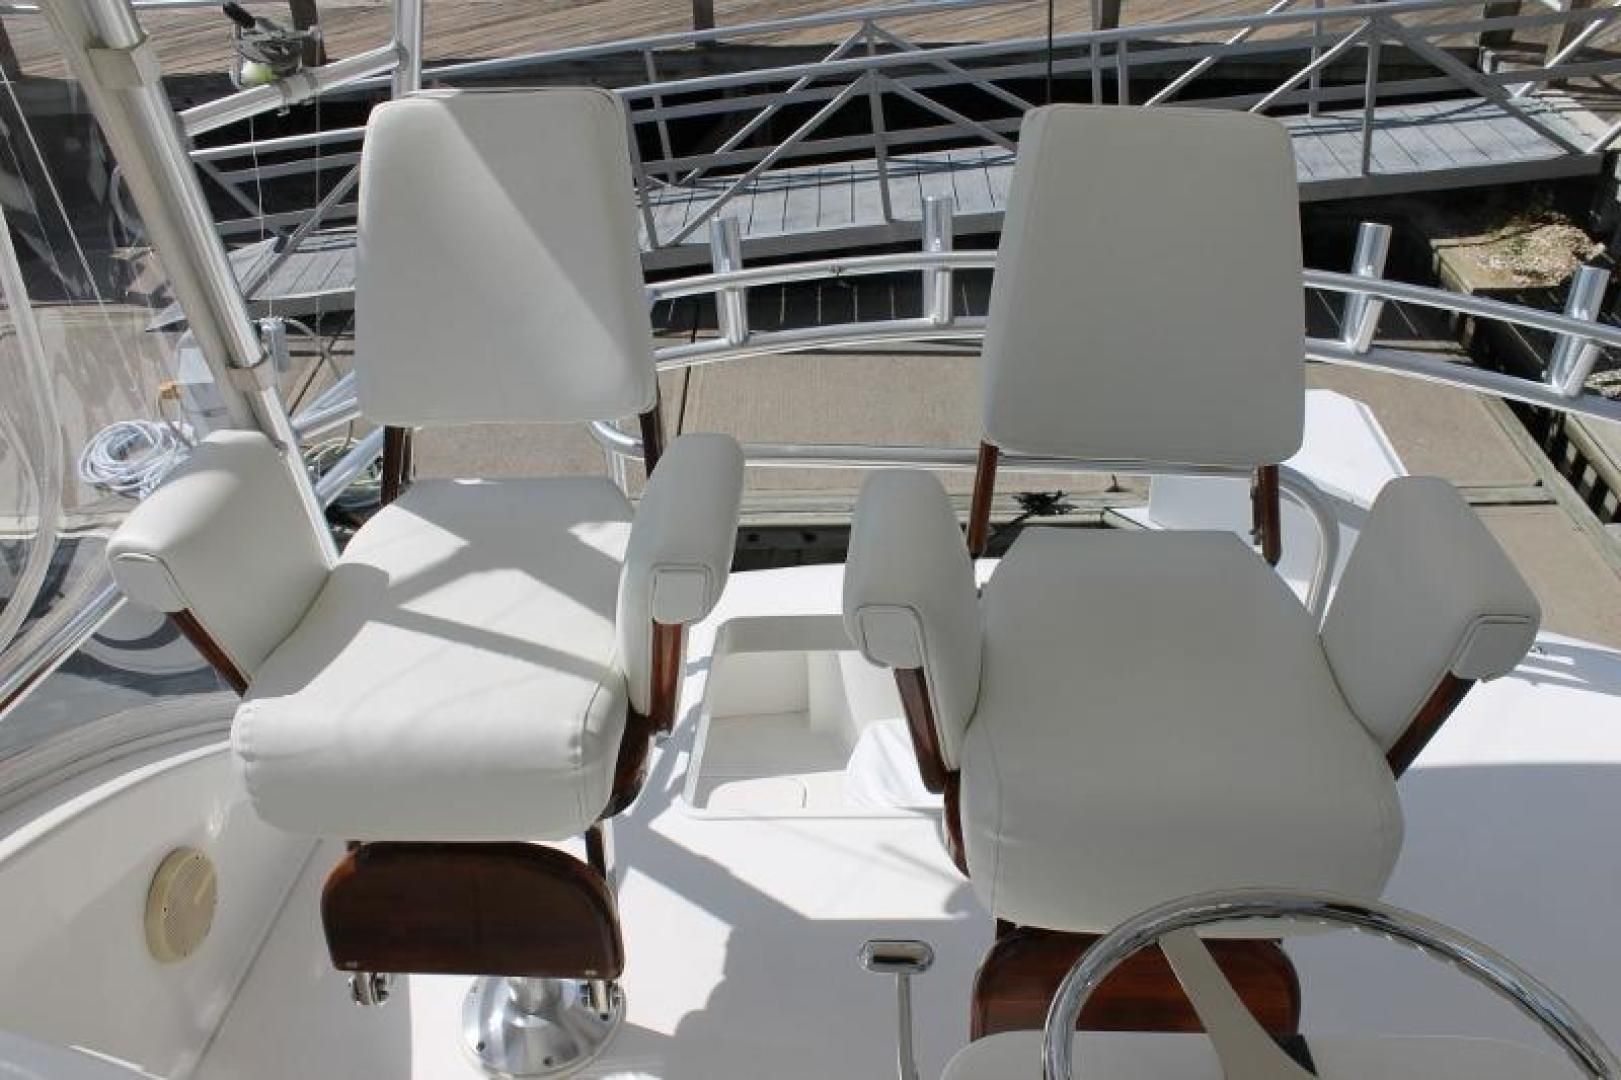 Ocean Yachts-46 Convertible Sportfish 2006-Sticks and Stones Cape May-New Jersey-United States-Helm Chairs-927956   Thumbnail